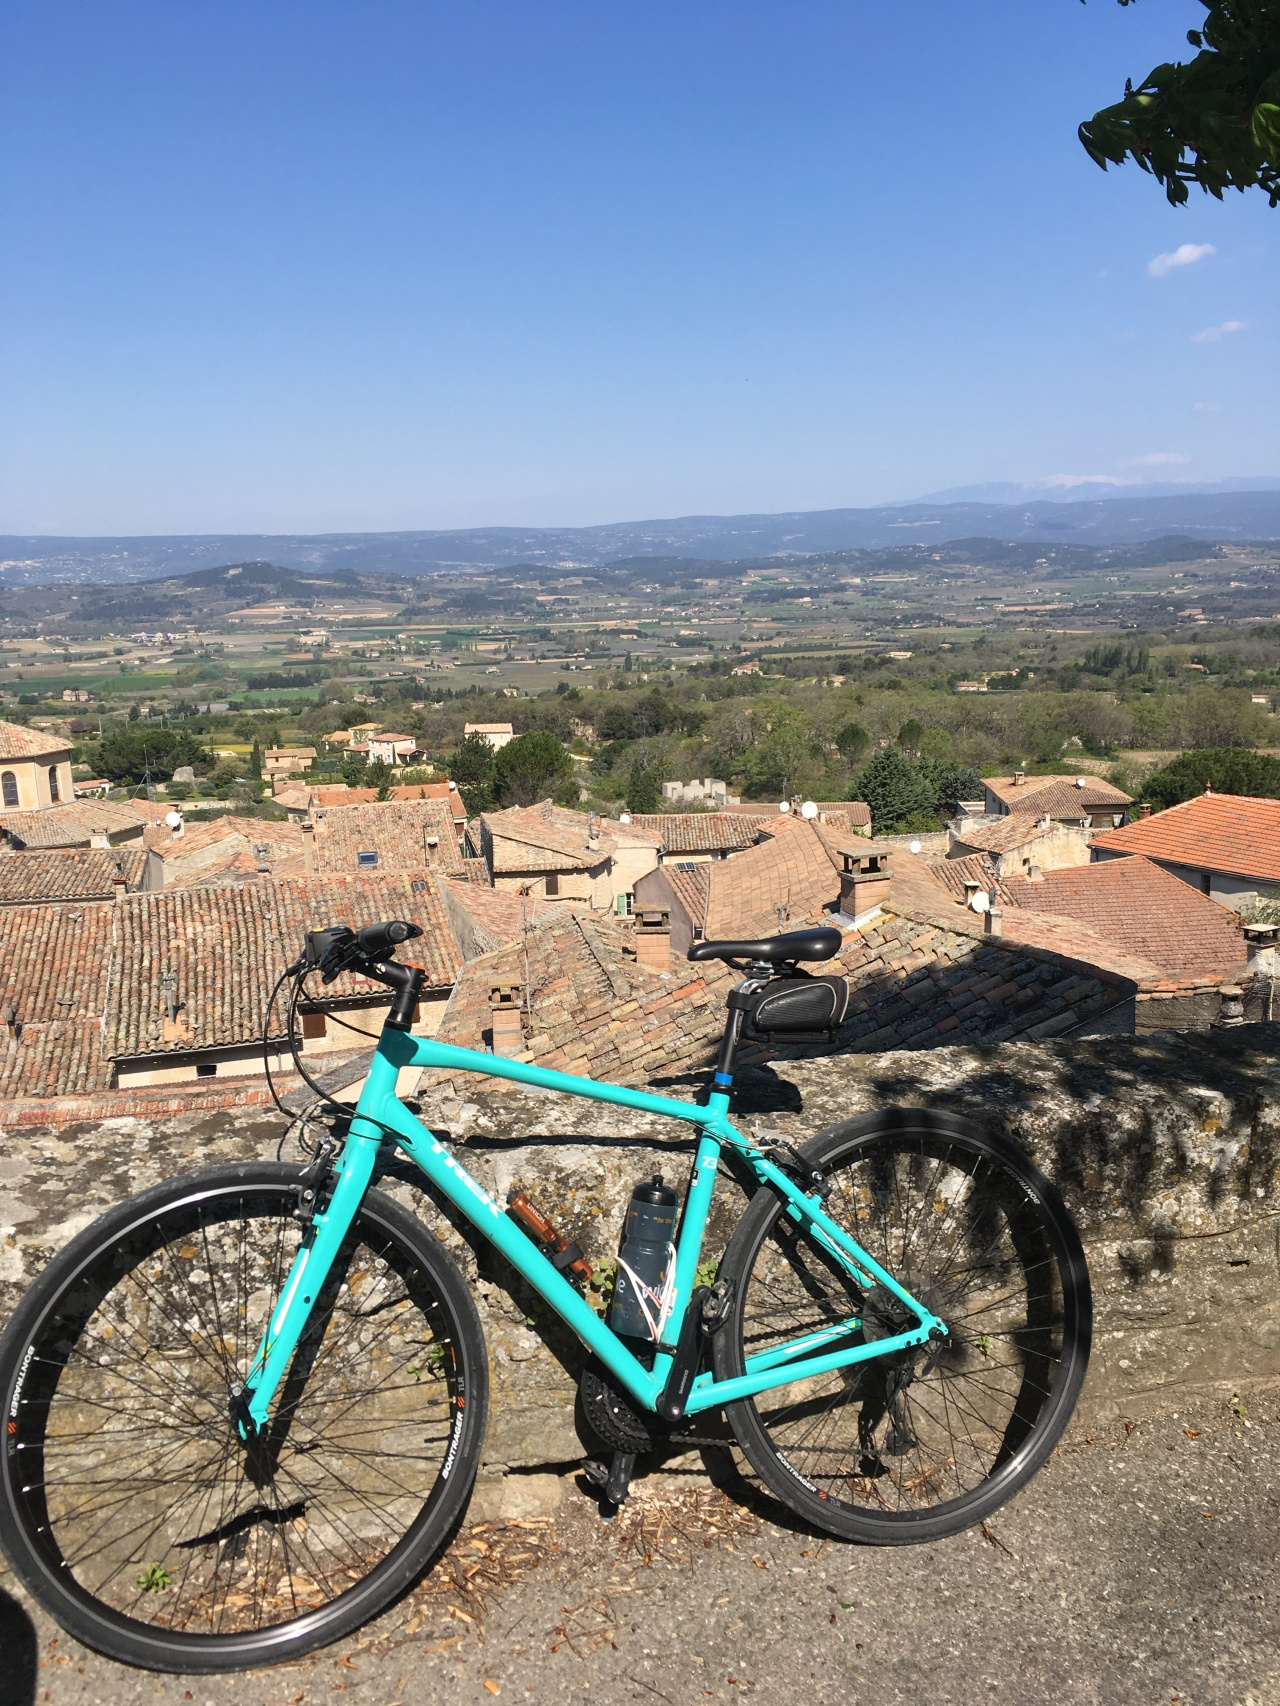 Beyond the Veloroute cycle #9 – Roussillon, Bonnieux & an Elephant!